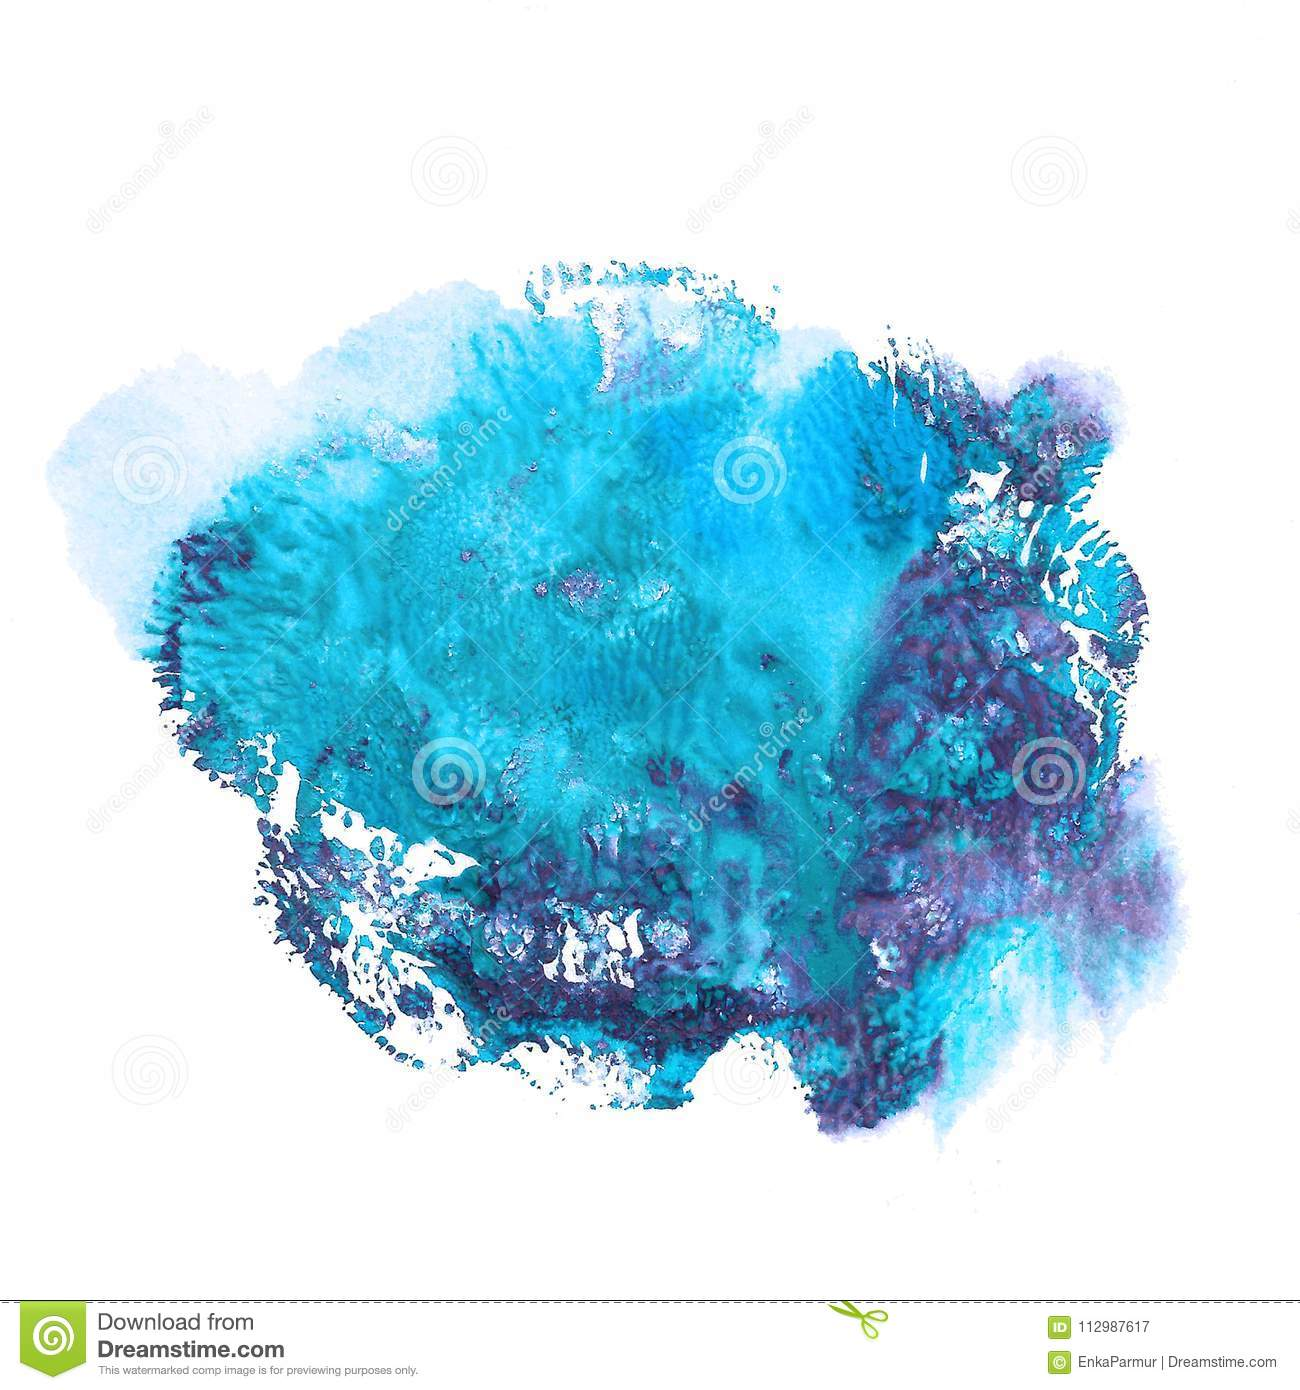 Abstract acrylic spot isolated on white background. Monotyped hand drawn grunge stain.